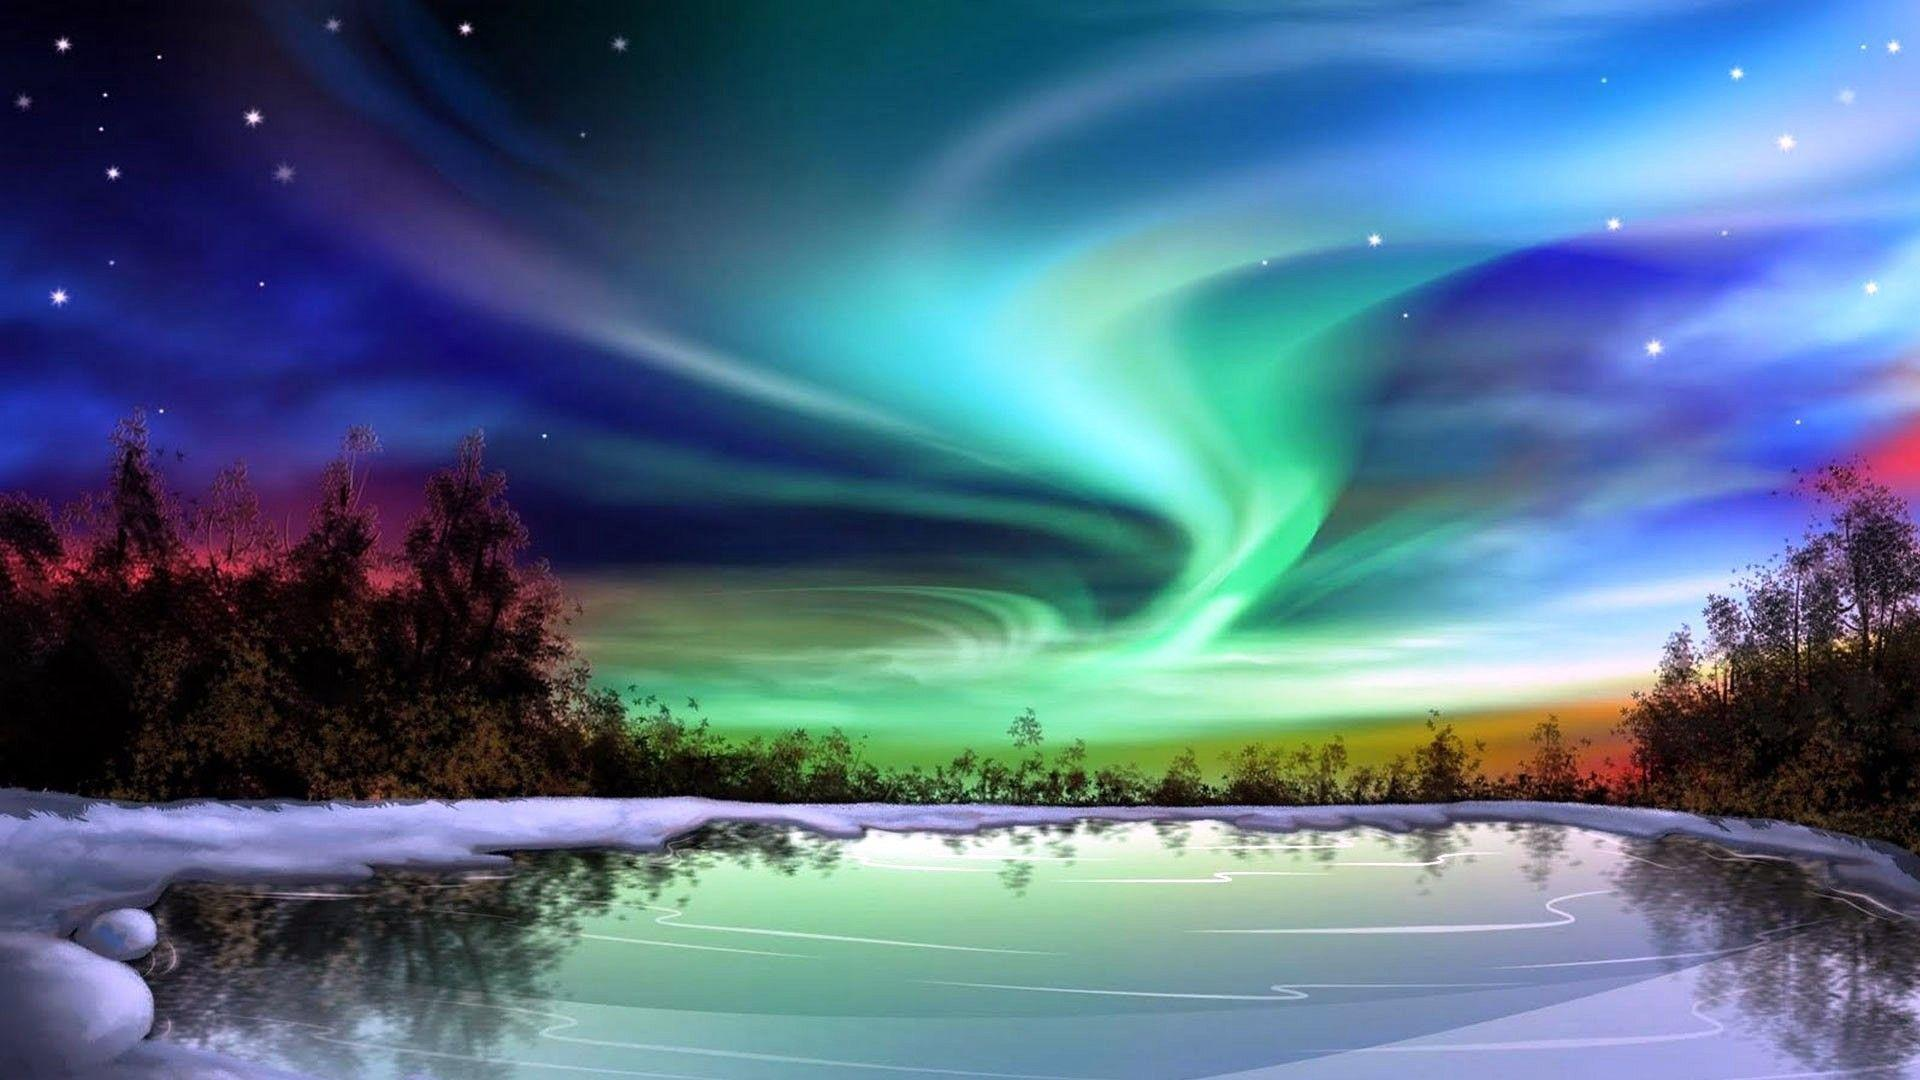 northern lights wallpapers wallpaper cave. Black Bedroom Furniture Sets. Home Design Ideas